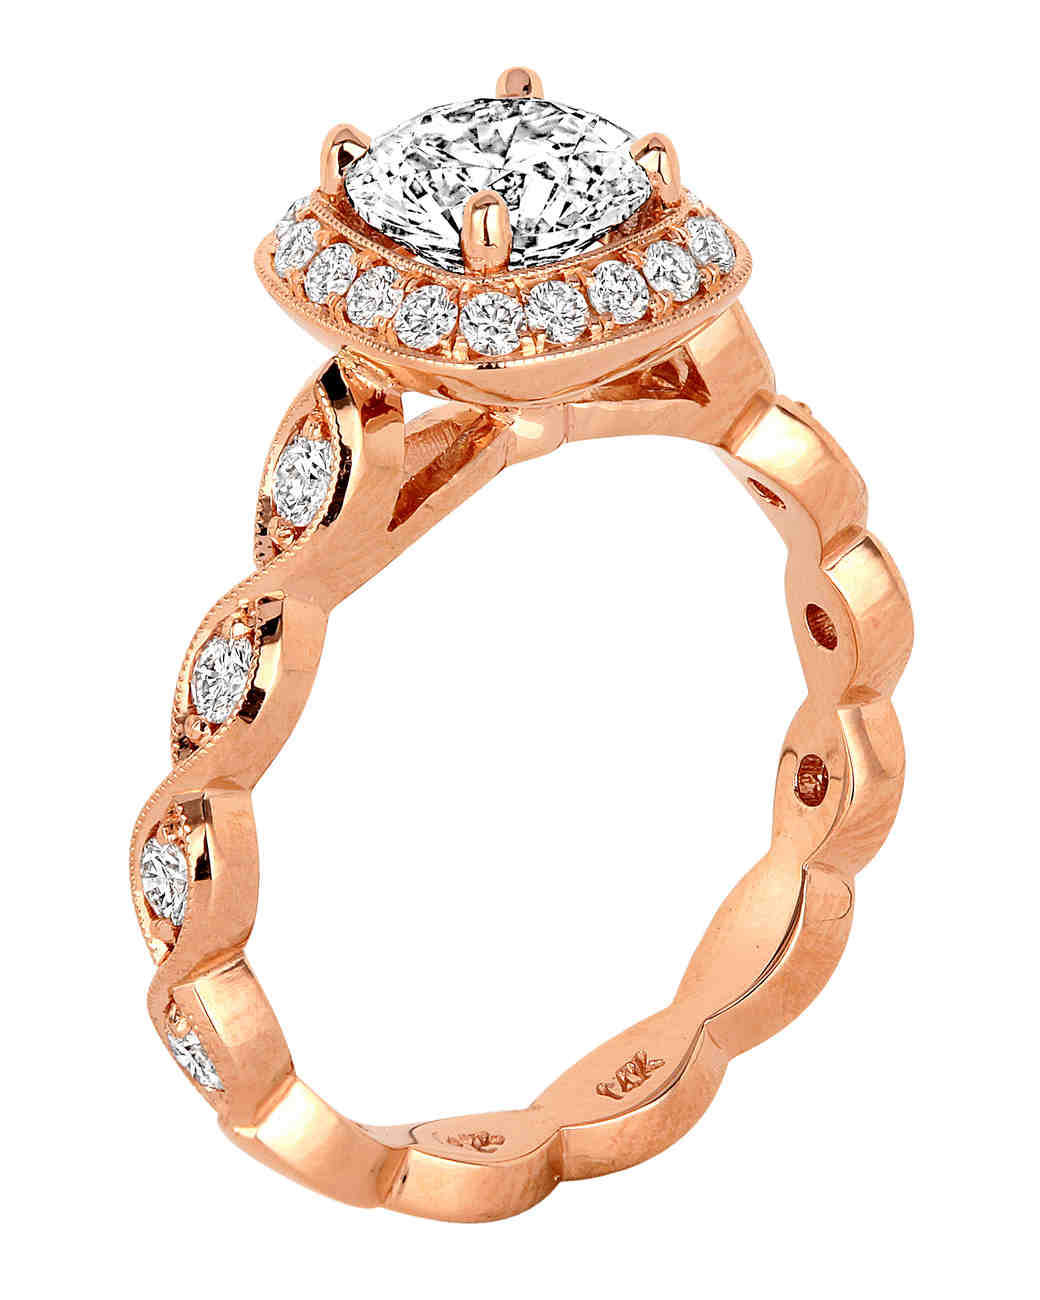 Jack Kelége rose gold engagement ring with brilliant cut white diamonds